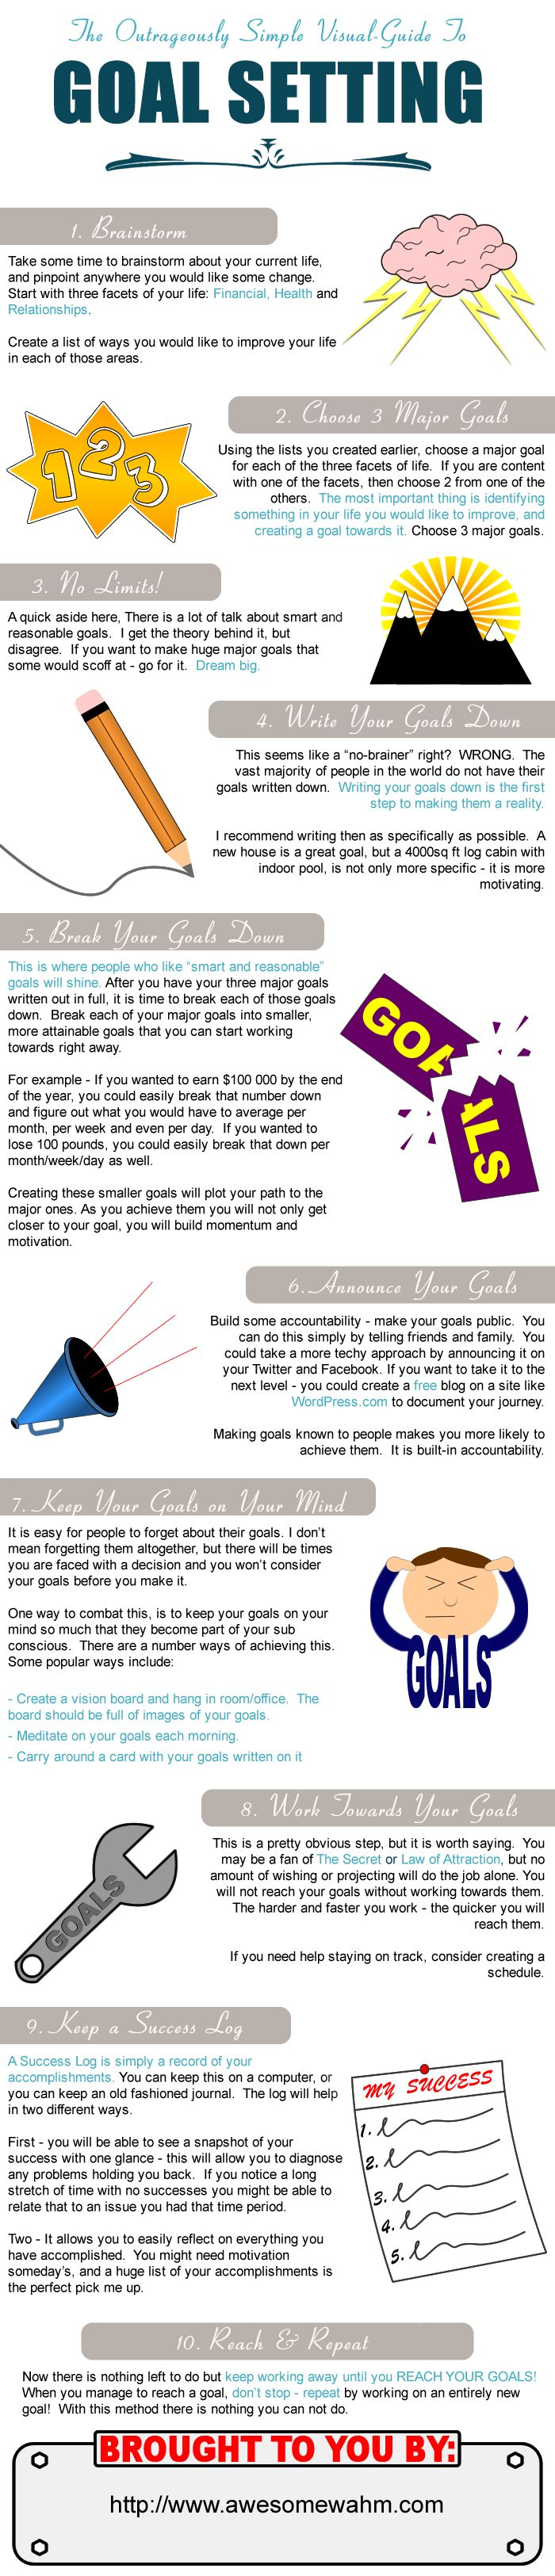 An outrageously simple visual guide to goal setting for 2013.